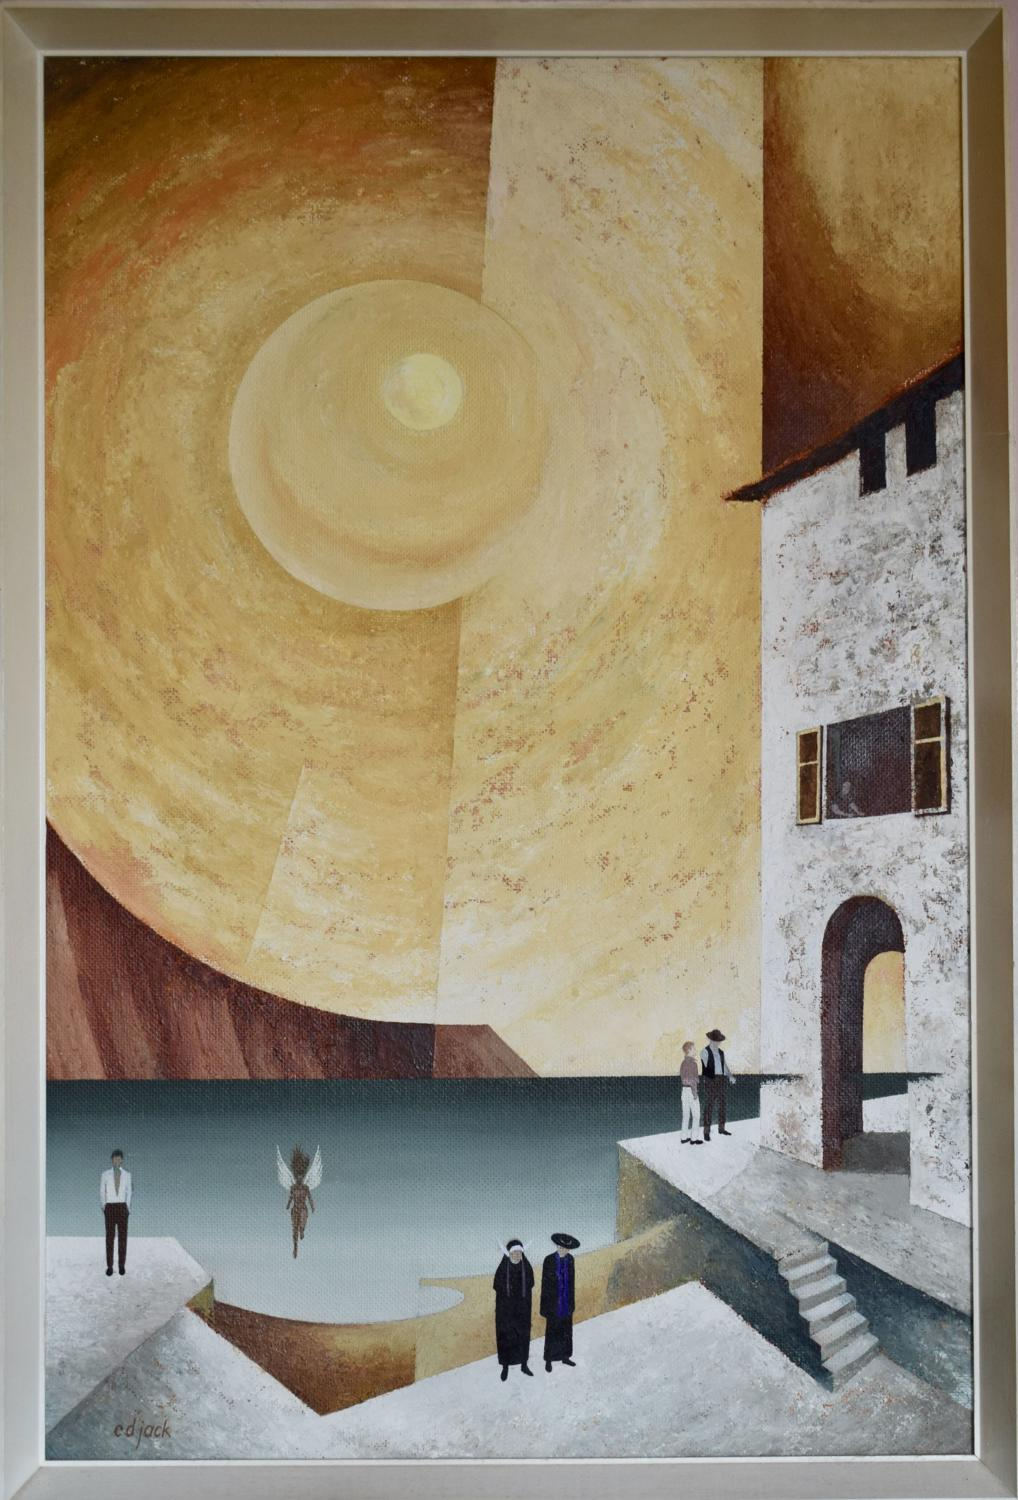 Surreal 1970's oil on board 'Below the Pyrenees' by C.D. Jack